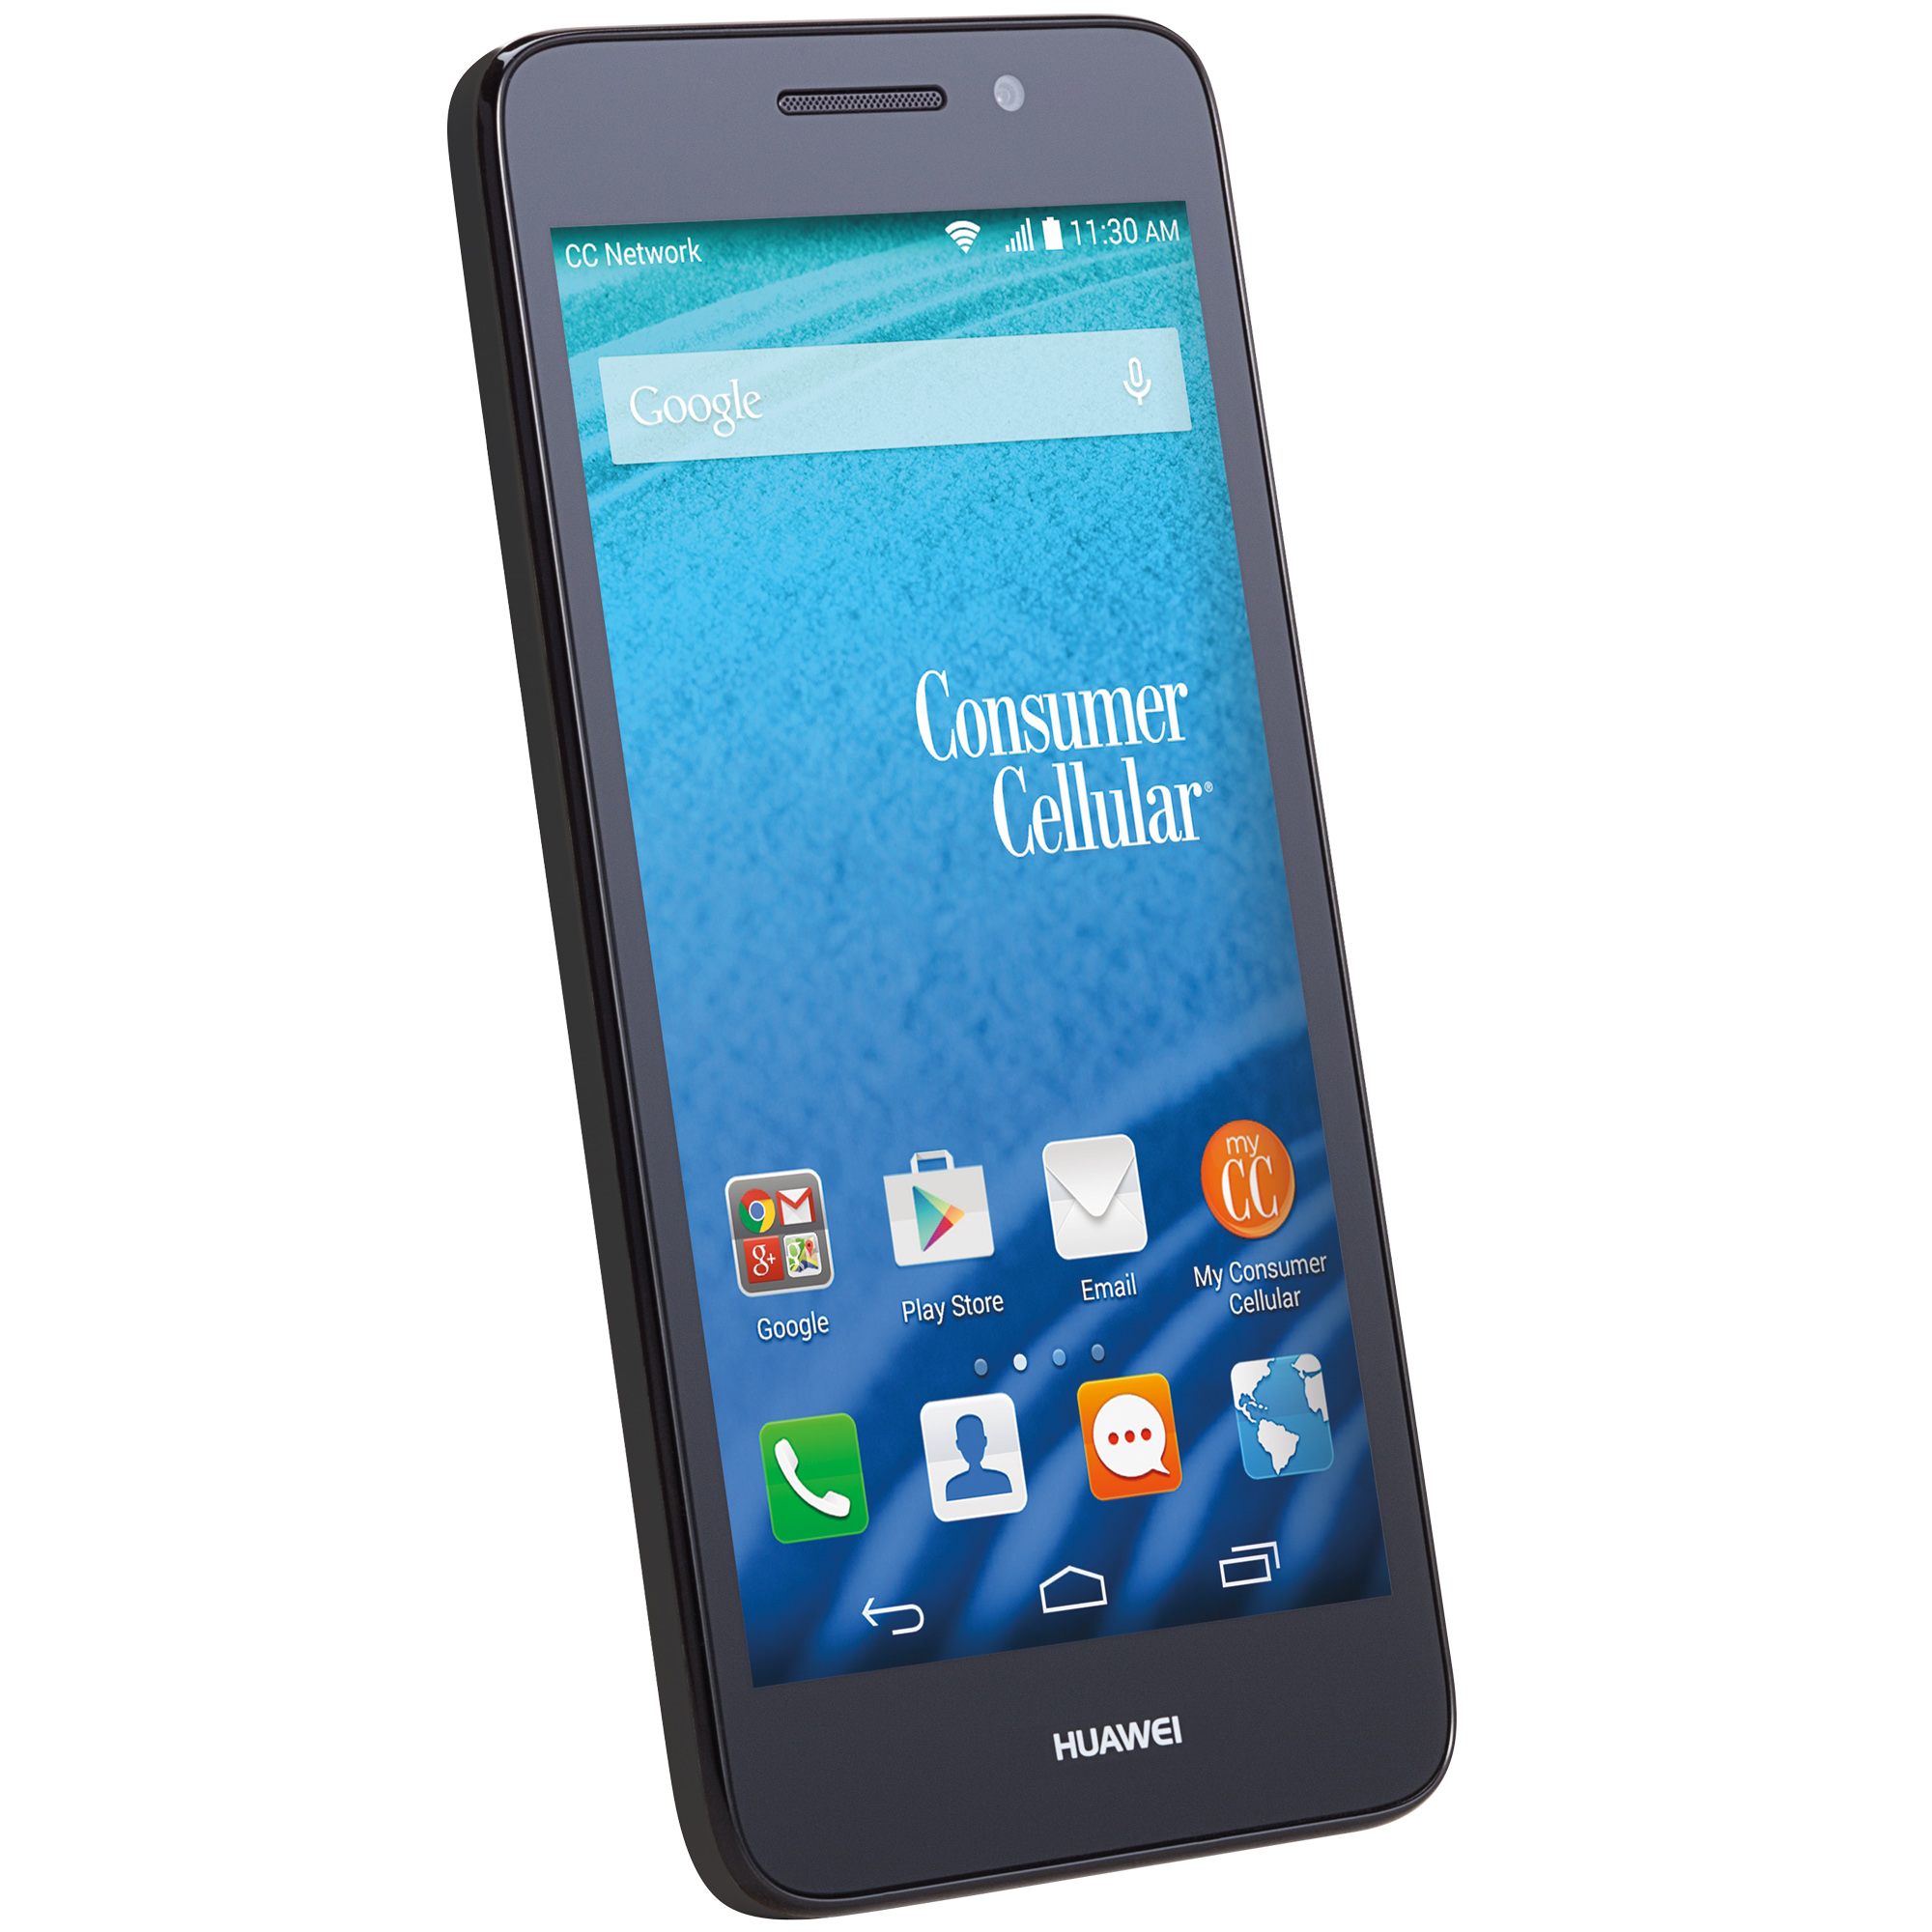 Consumer Cellular Huawei Vision 3 LTE Smartphone